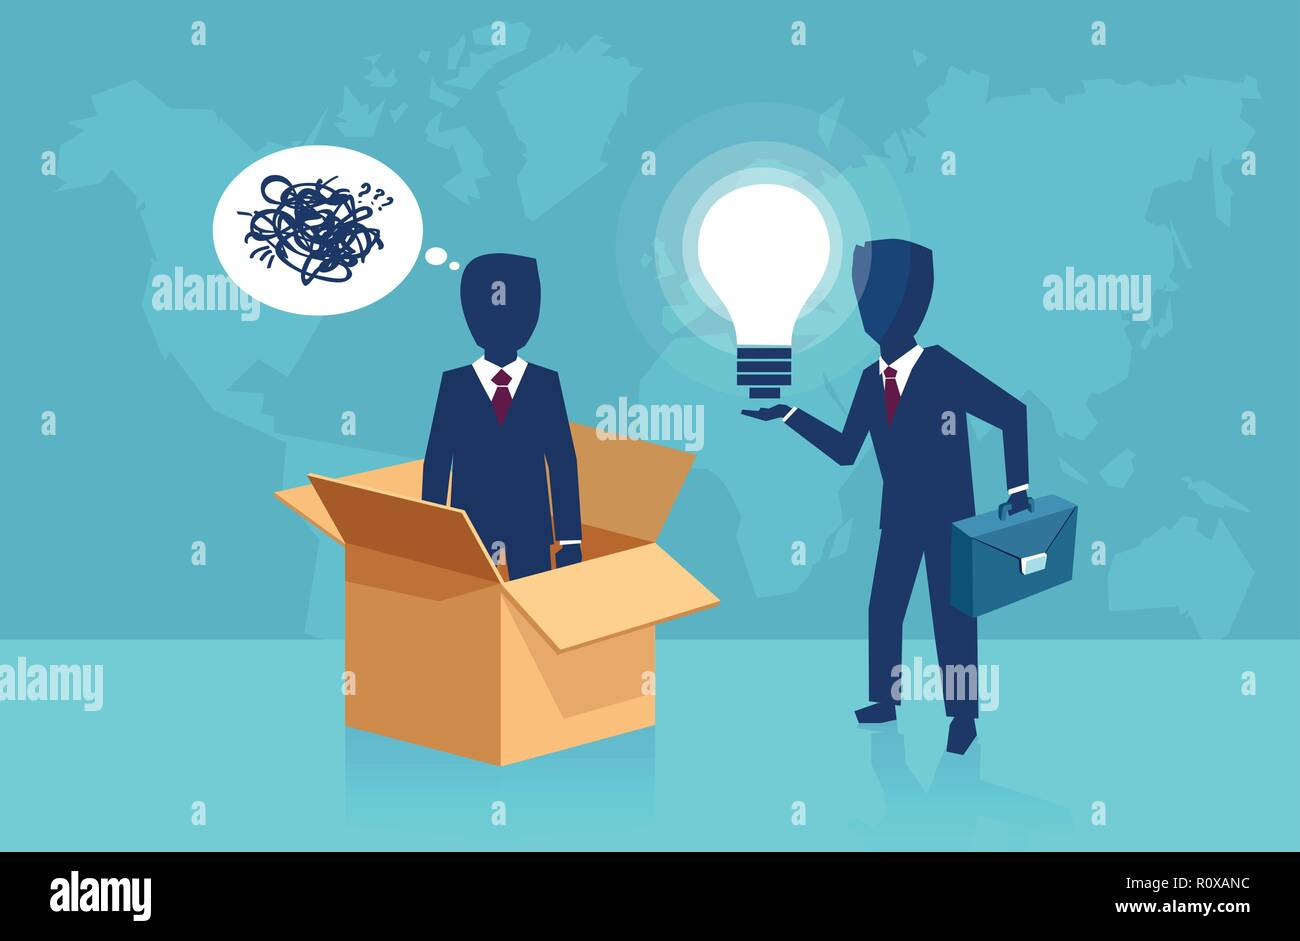 Vector concept for think outside the box idea - Stock Image